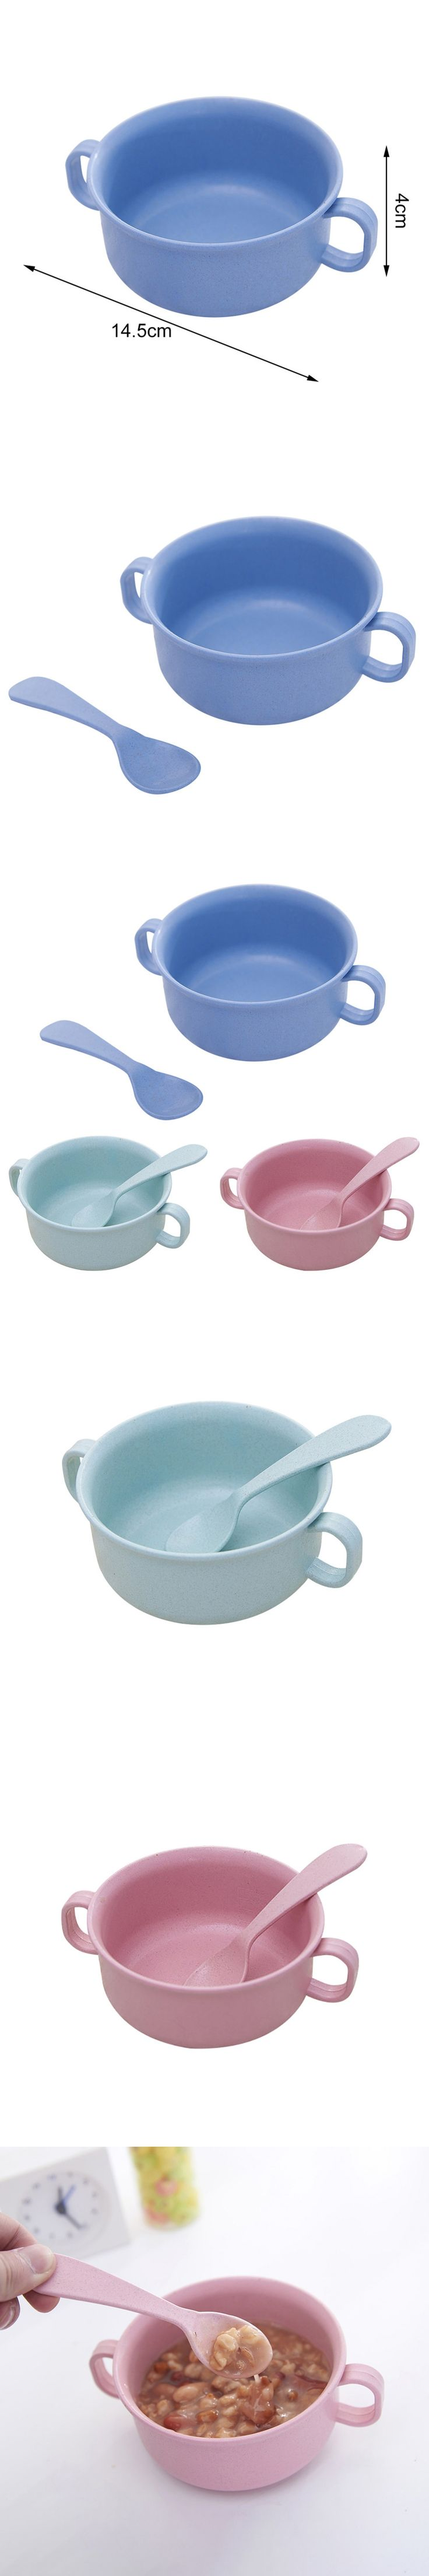 2pcs Children Bowl+Spoon Shatter Resistant Heatproof Bowl Wheat Straw Tableware with Handle Baby Bowl for Baby Kids Feeding Food